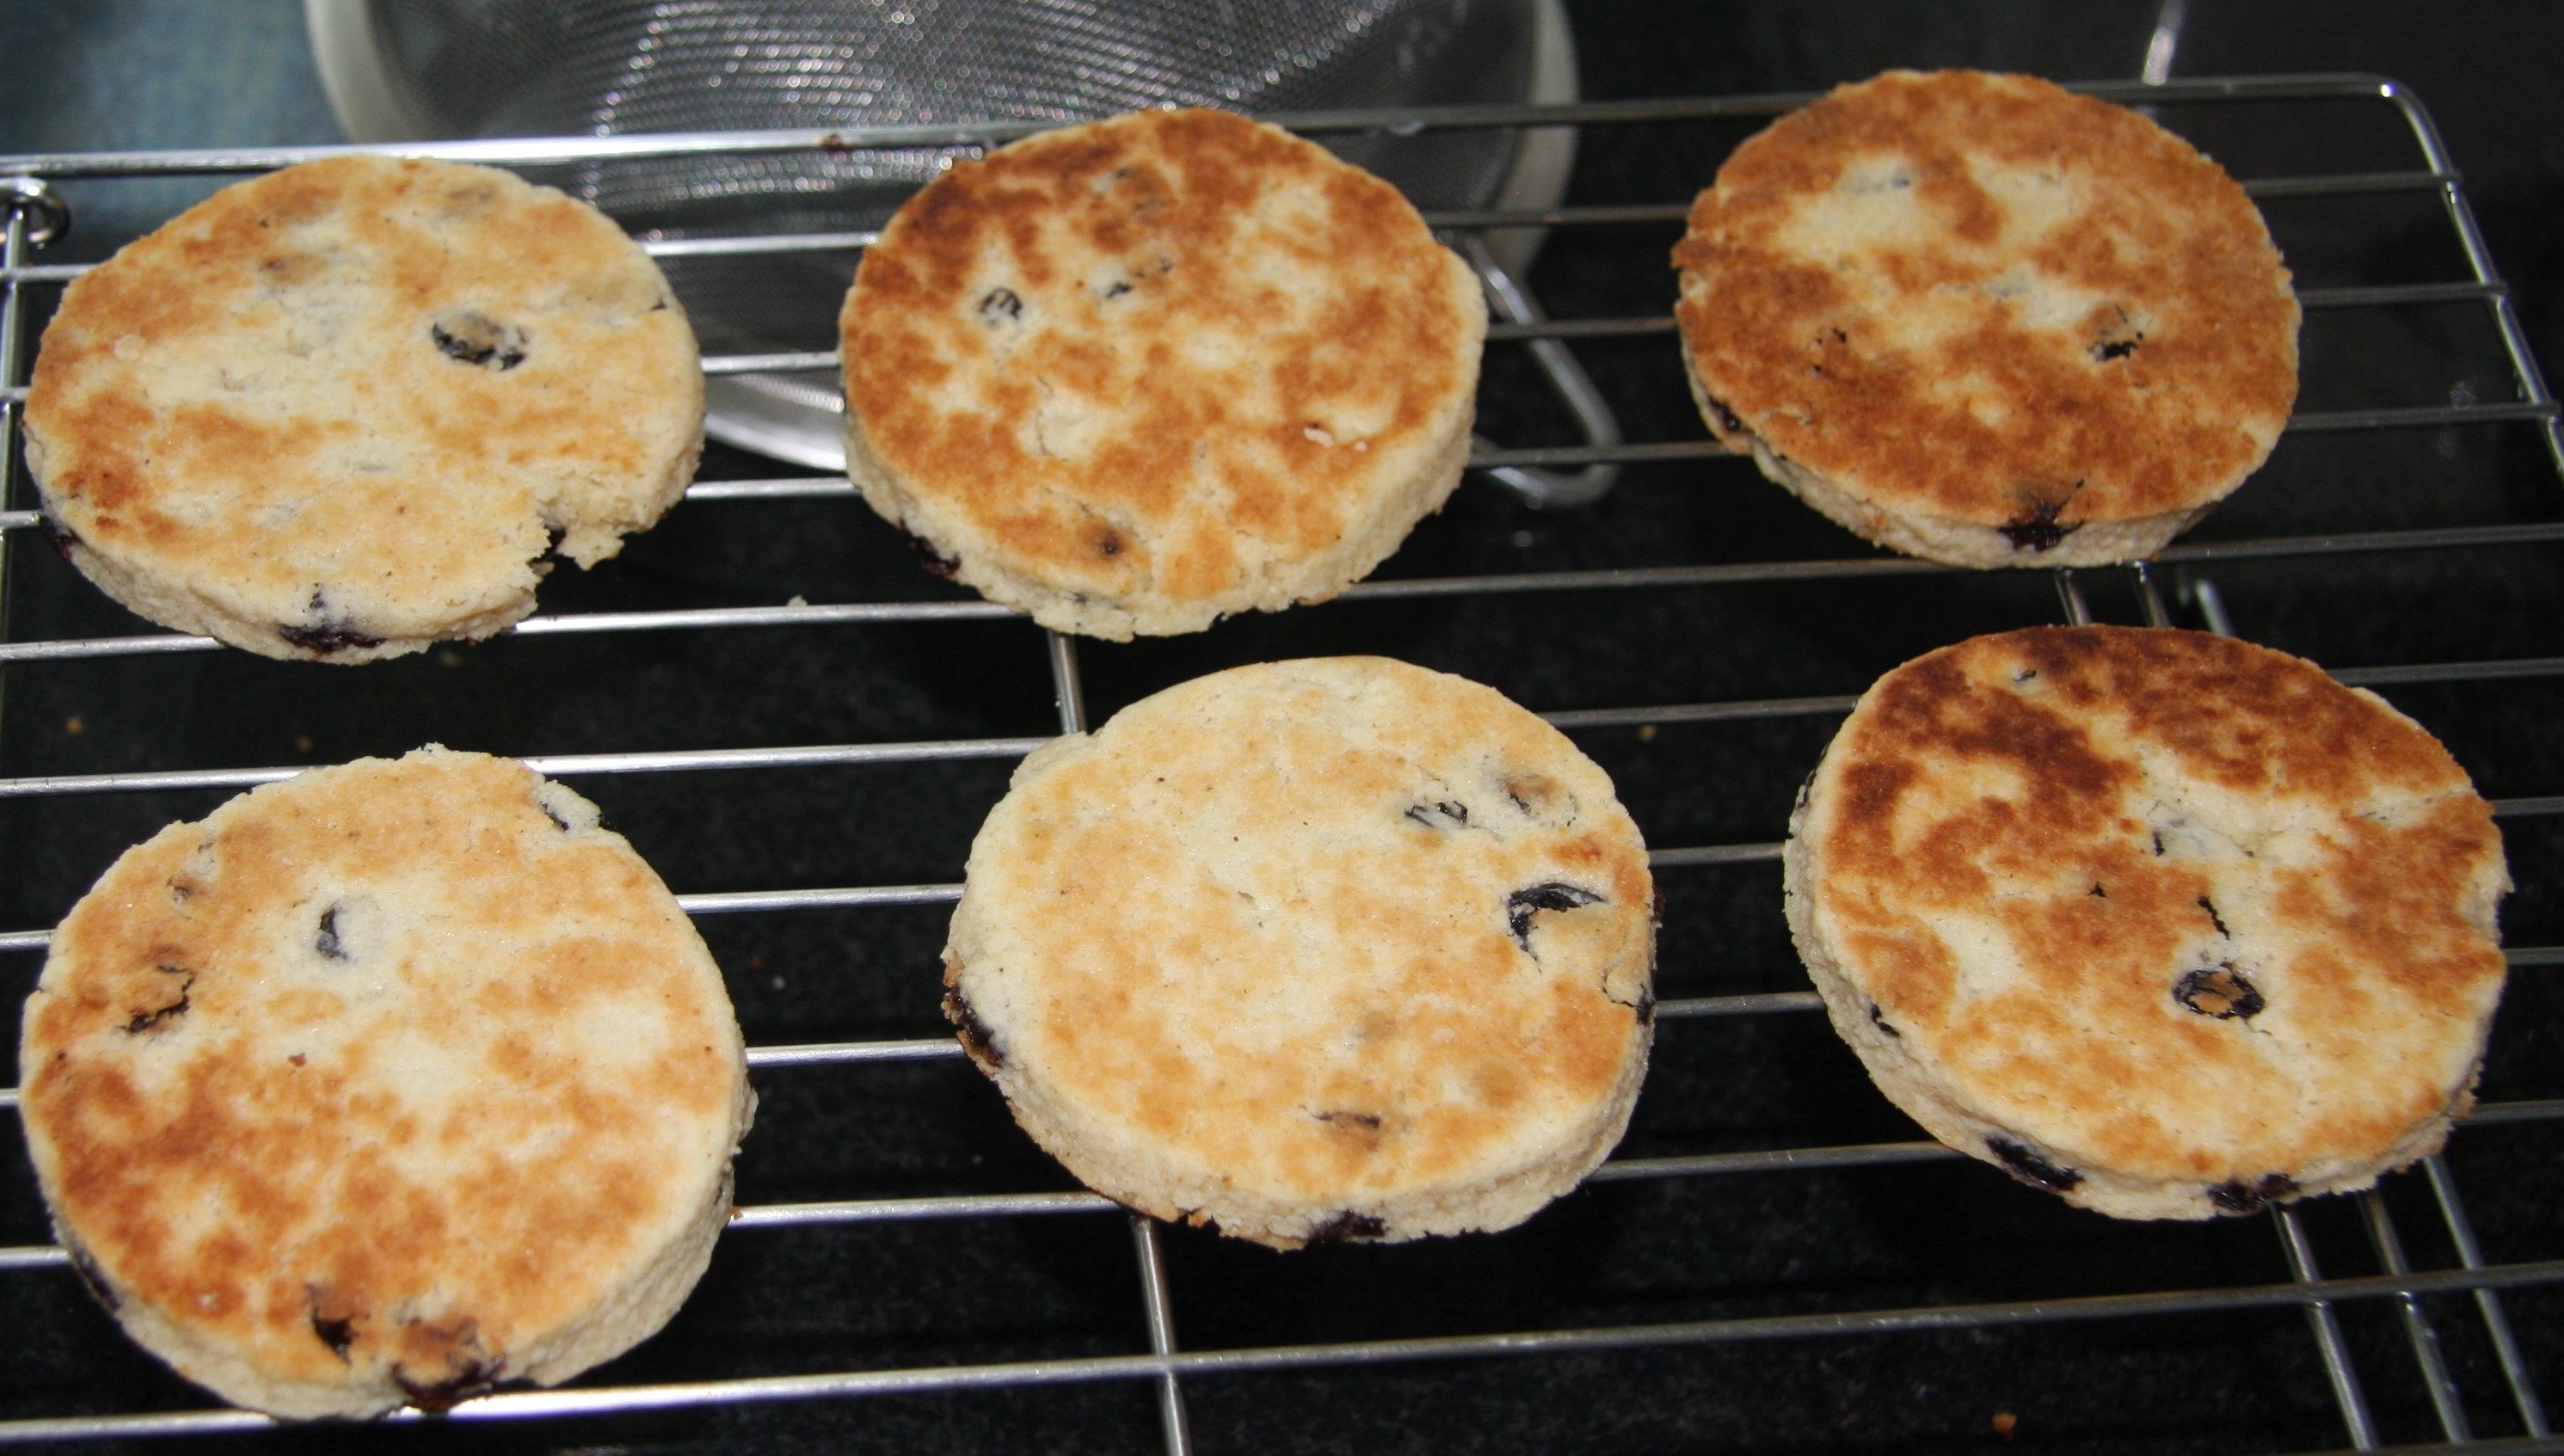 Can You Bake Welsh Cakes In The Oven